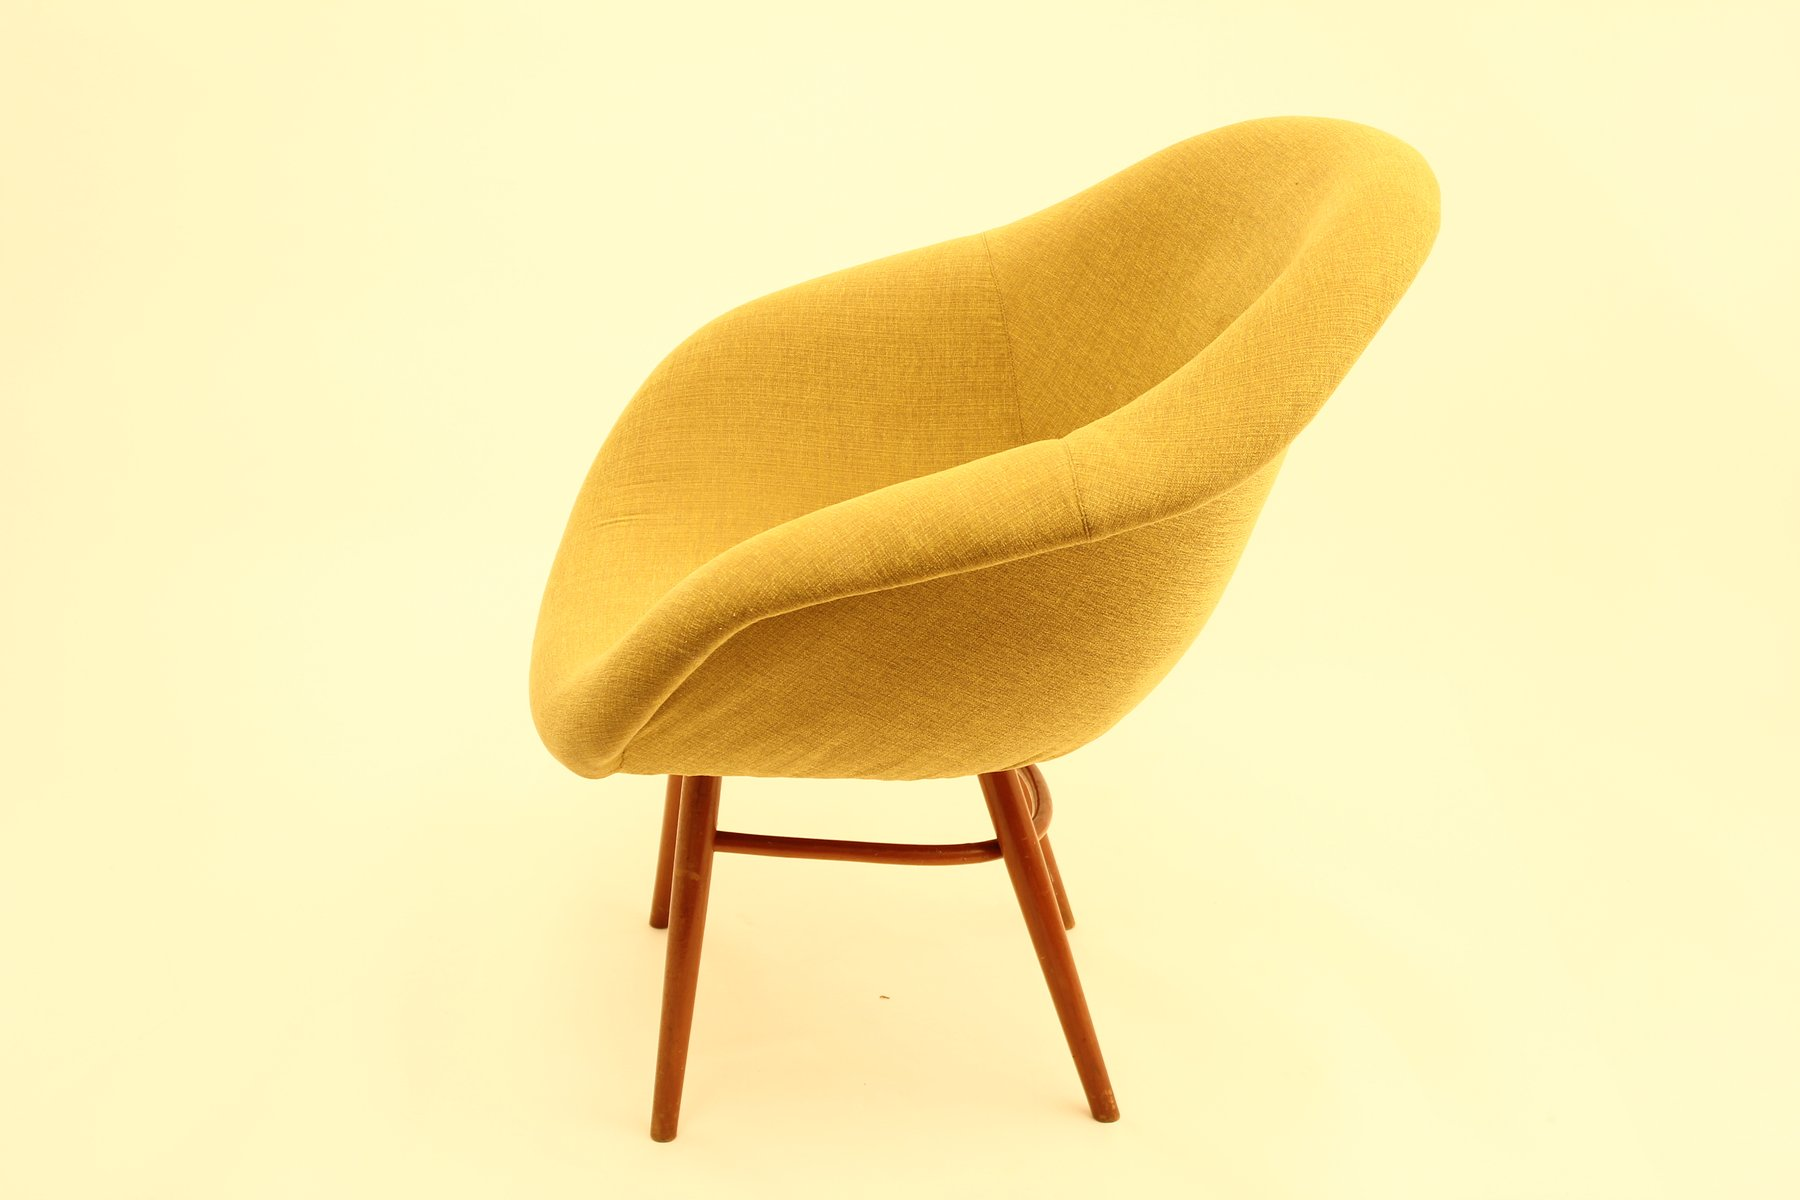 fiberglass shell chair workout ball office 1960s for sale at pamono